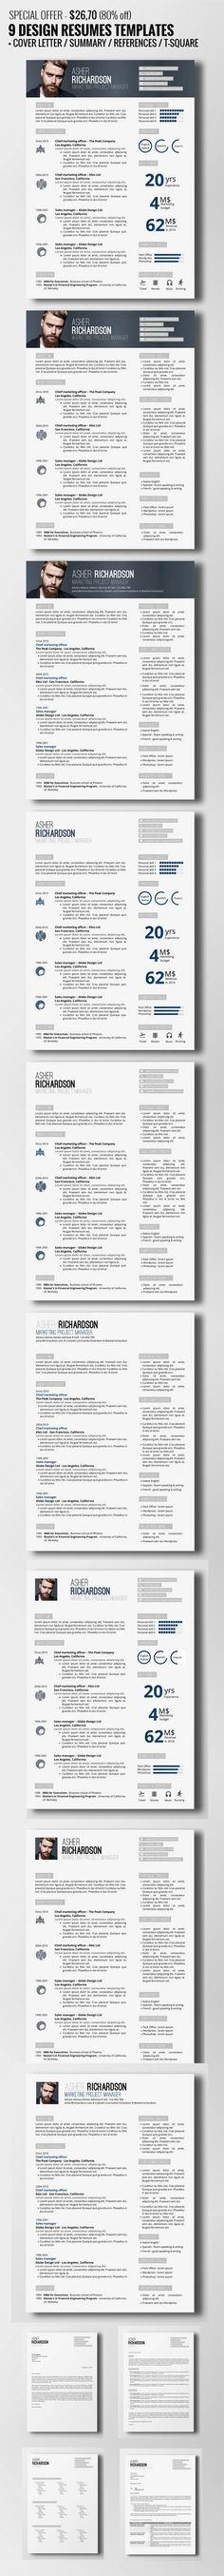 435 best Resume images on Pinterest Resume design, Design resume - free resume templates microsoft